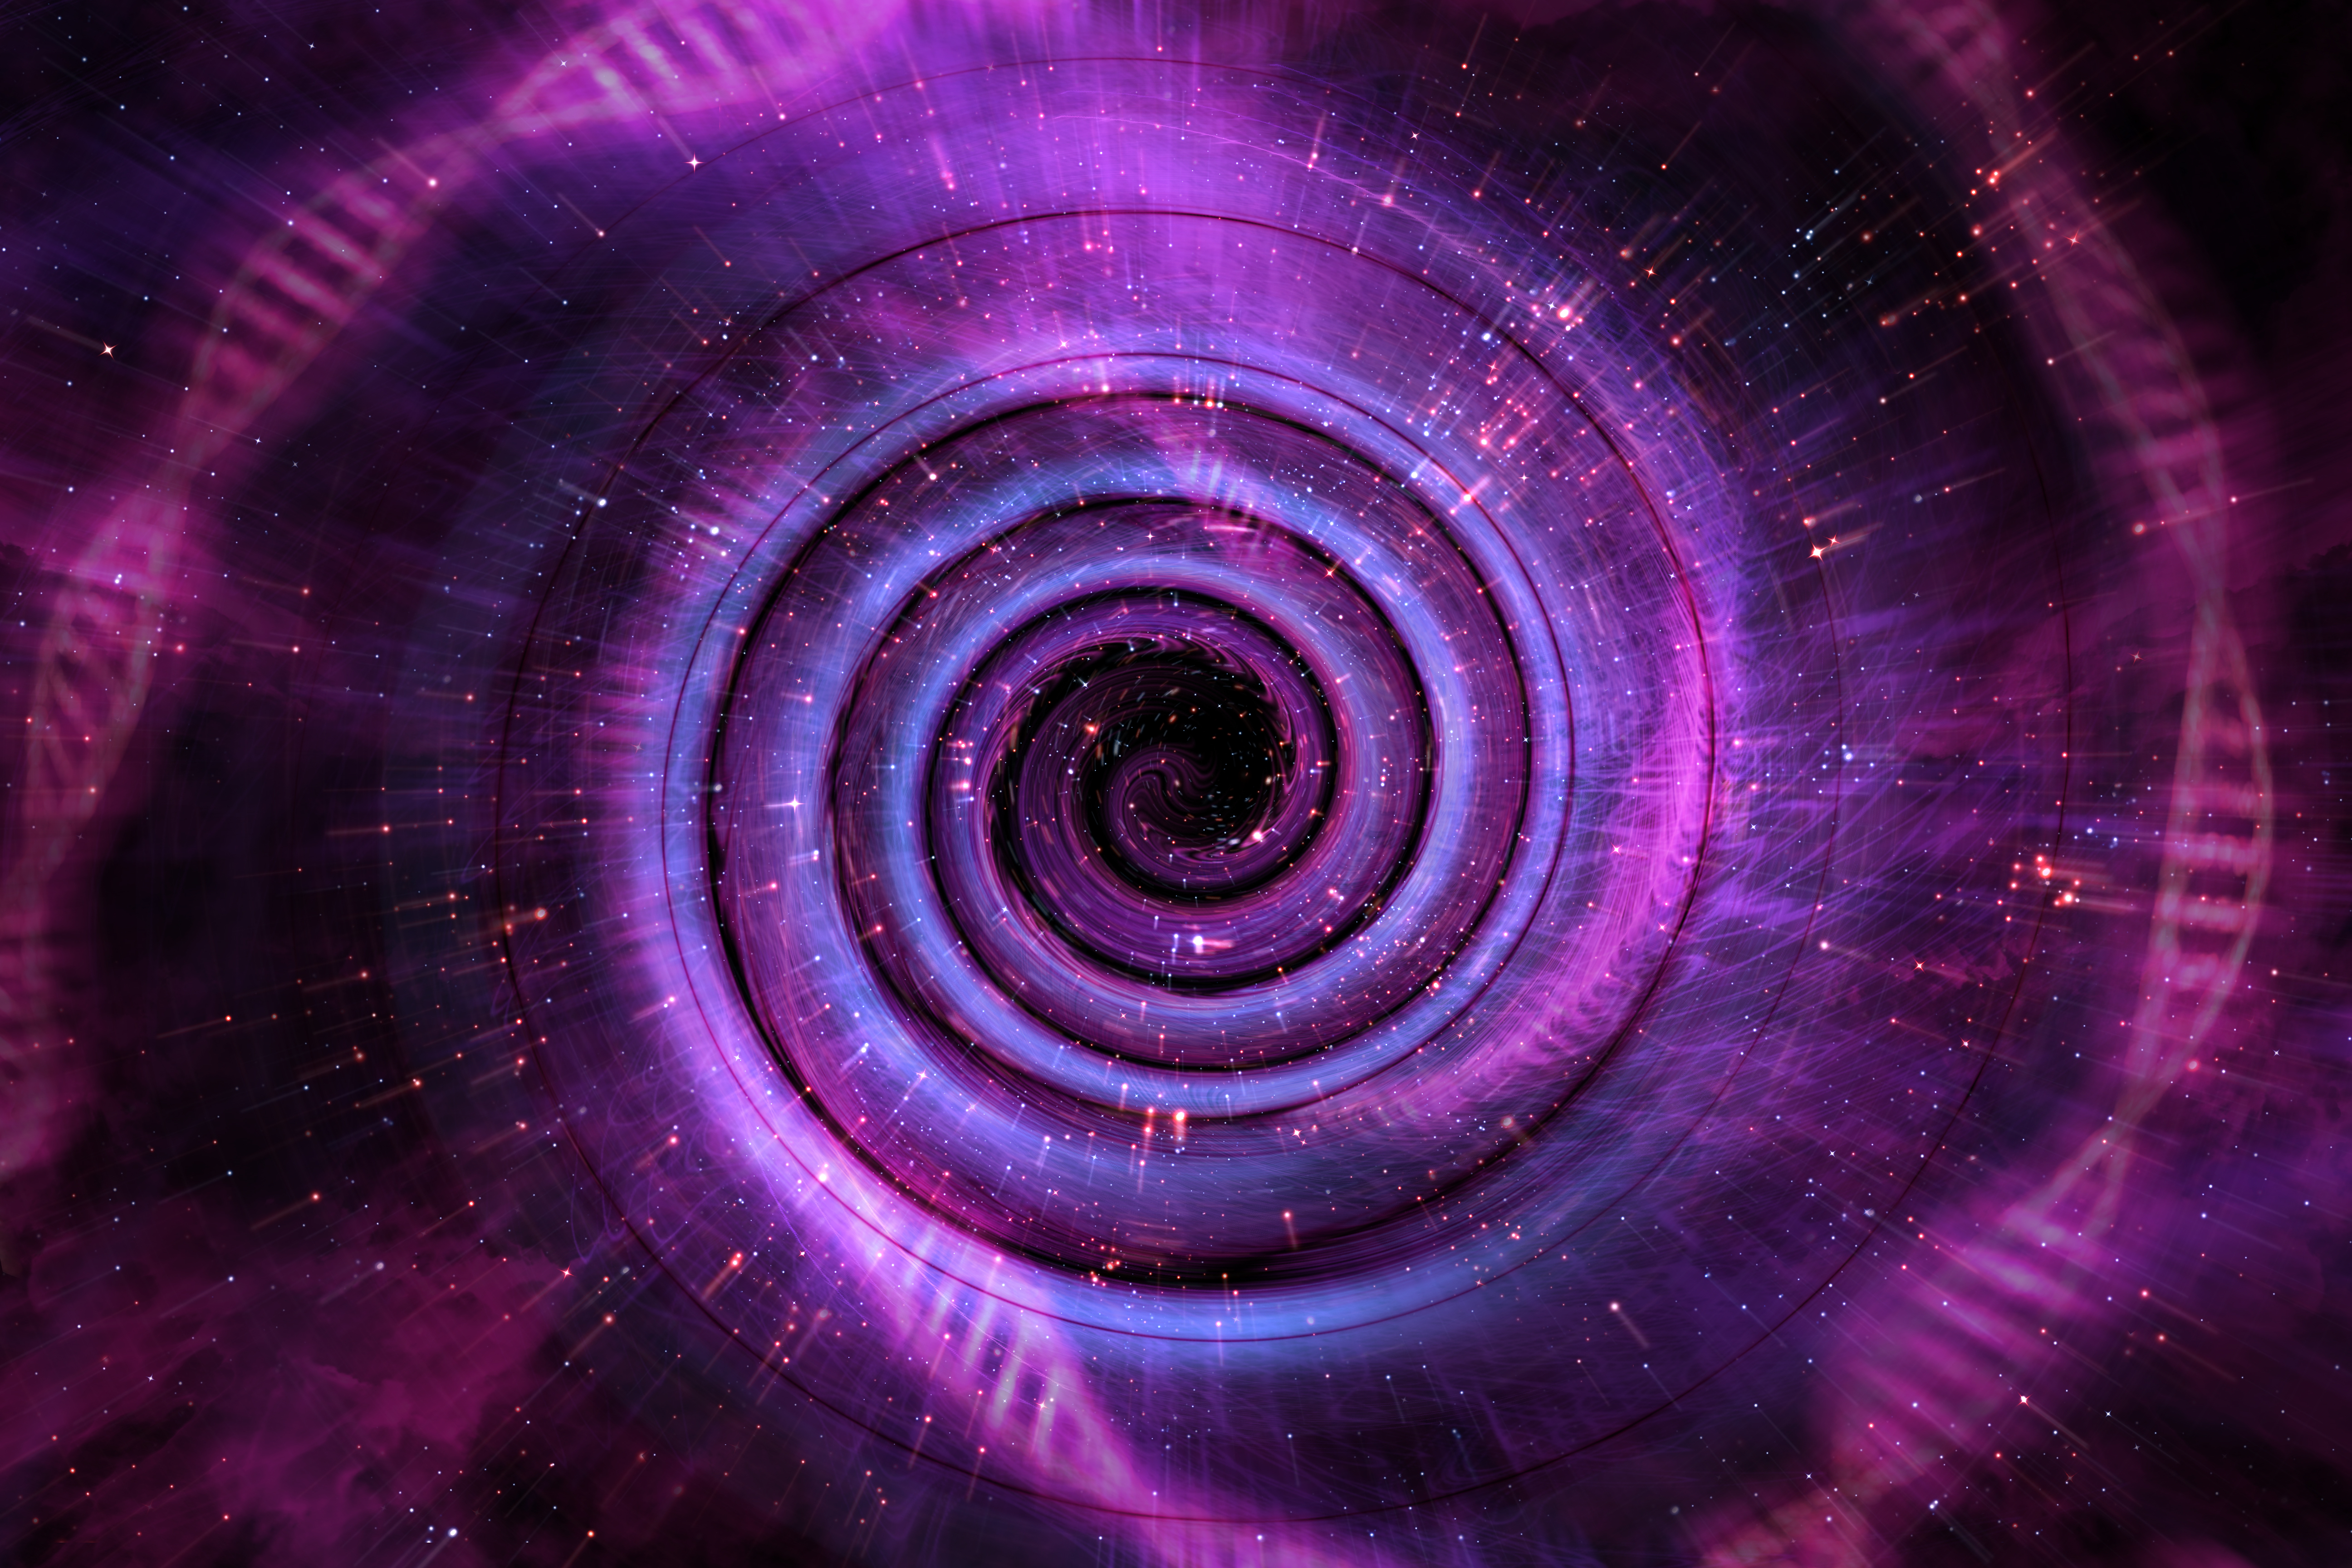 Hypnosis is a natural state of awareness and occurs several times a day unaware